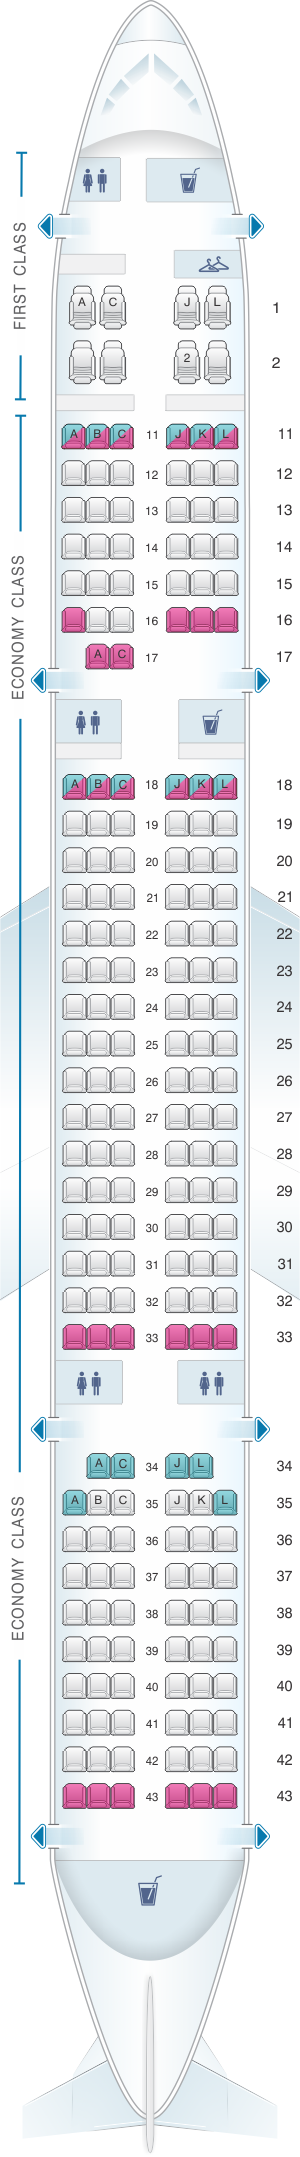 Seat map for Air China Boeing B757 200